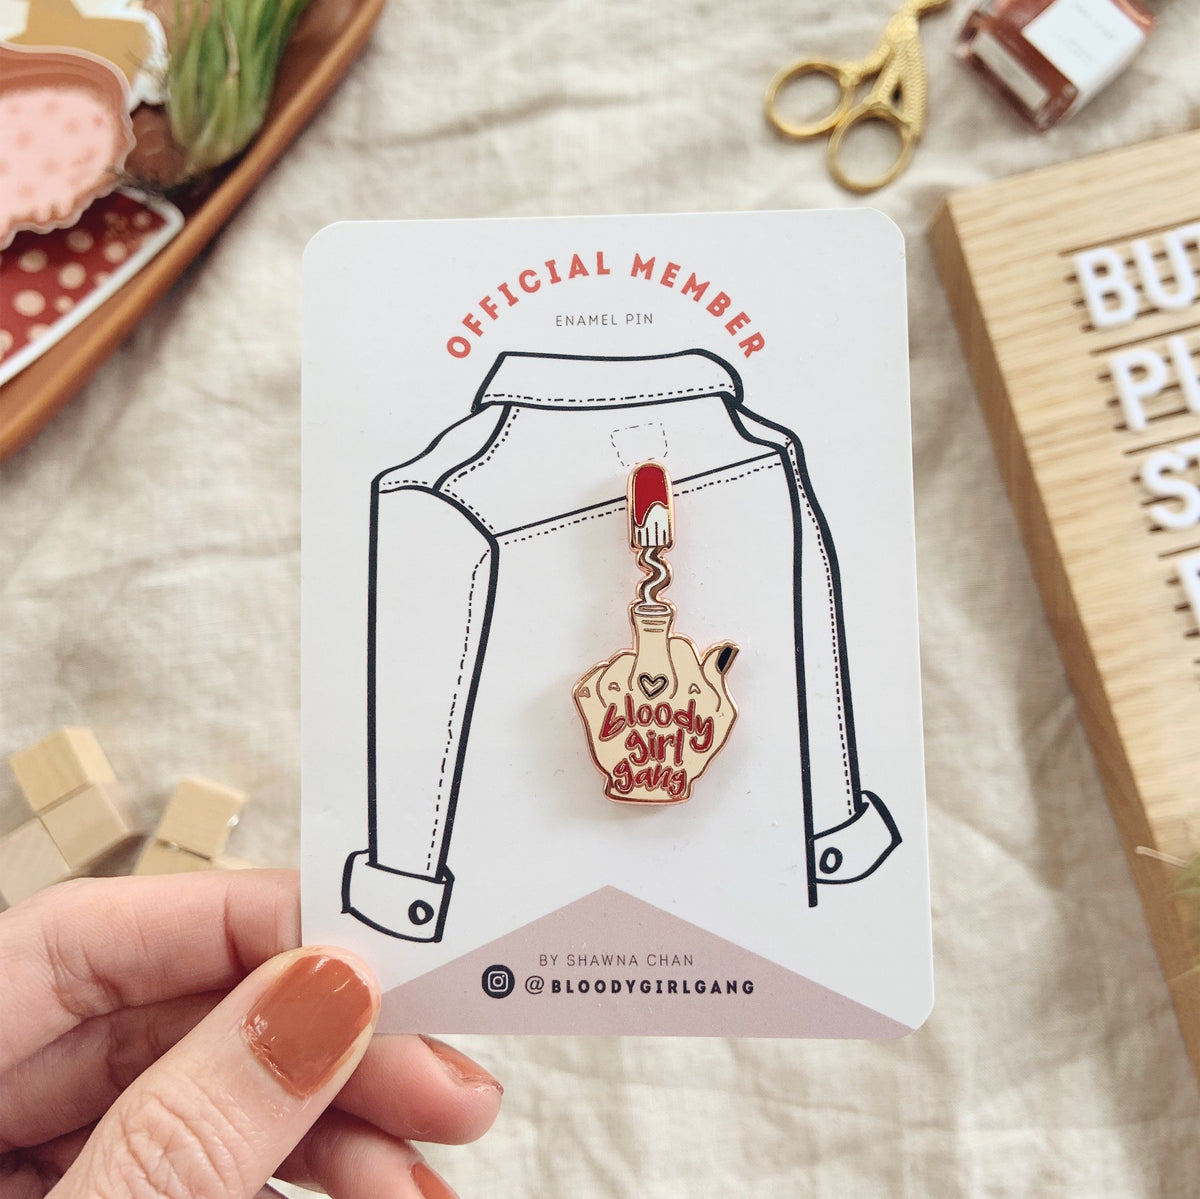 Bloody Girl Gang Official Member Enamel Pin - F Off My Body